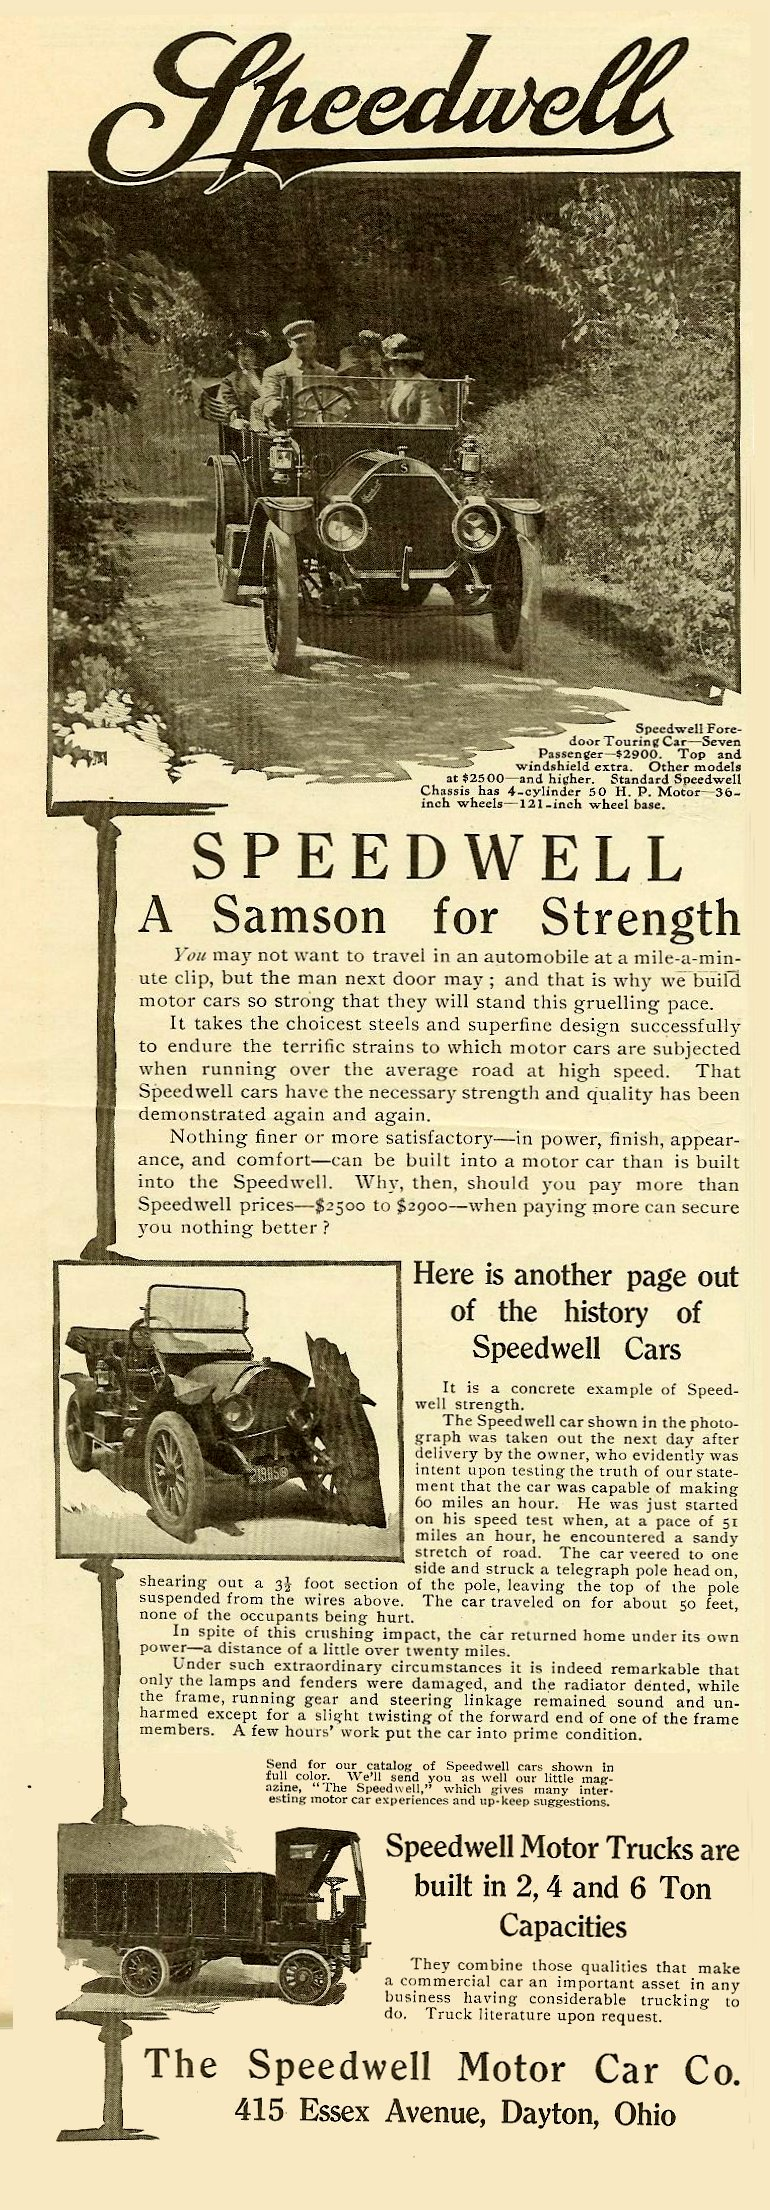 1911 5 6 Speedwell A Samson for Strength Harper's Weekly Advertiser magazine May 6, 1911 5″x14″ page 28